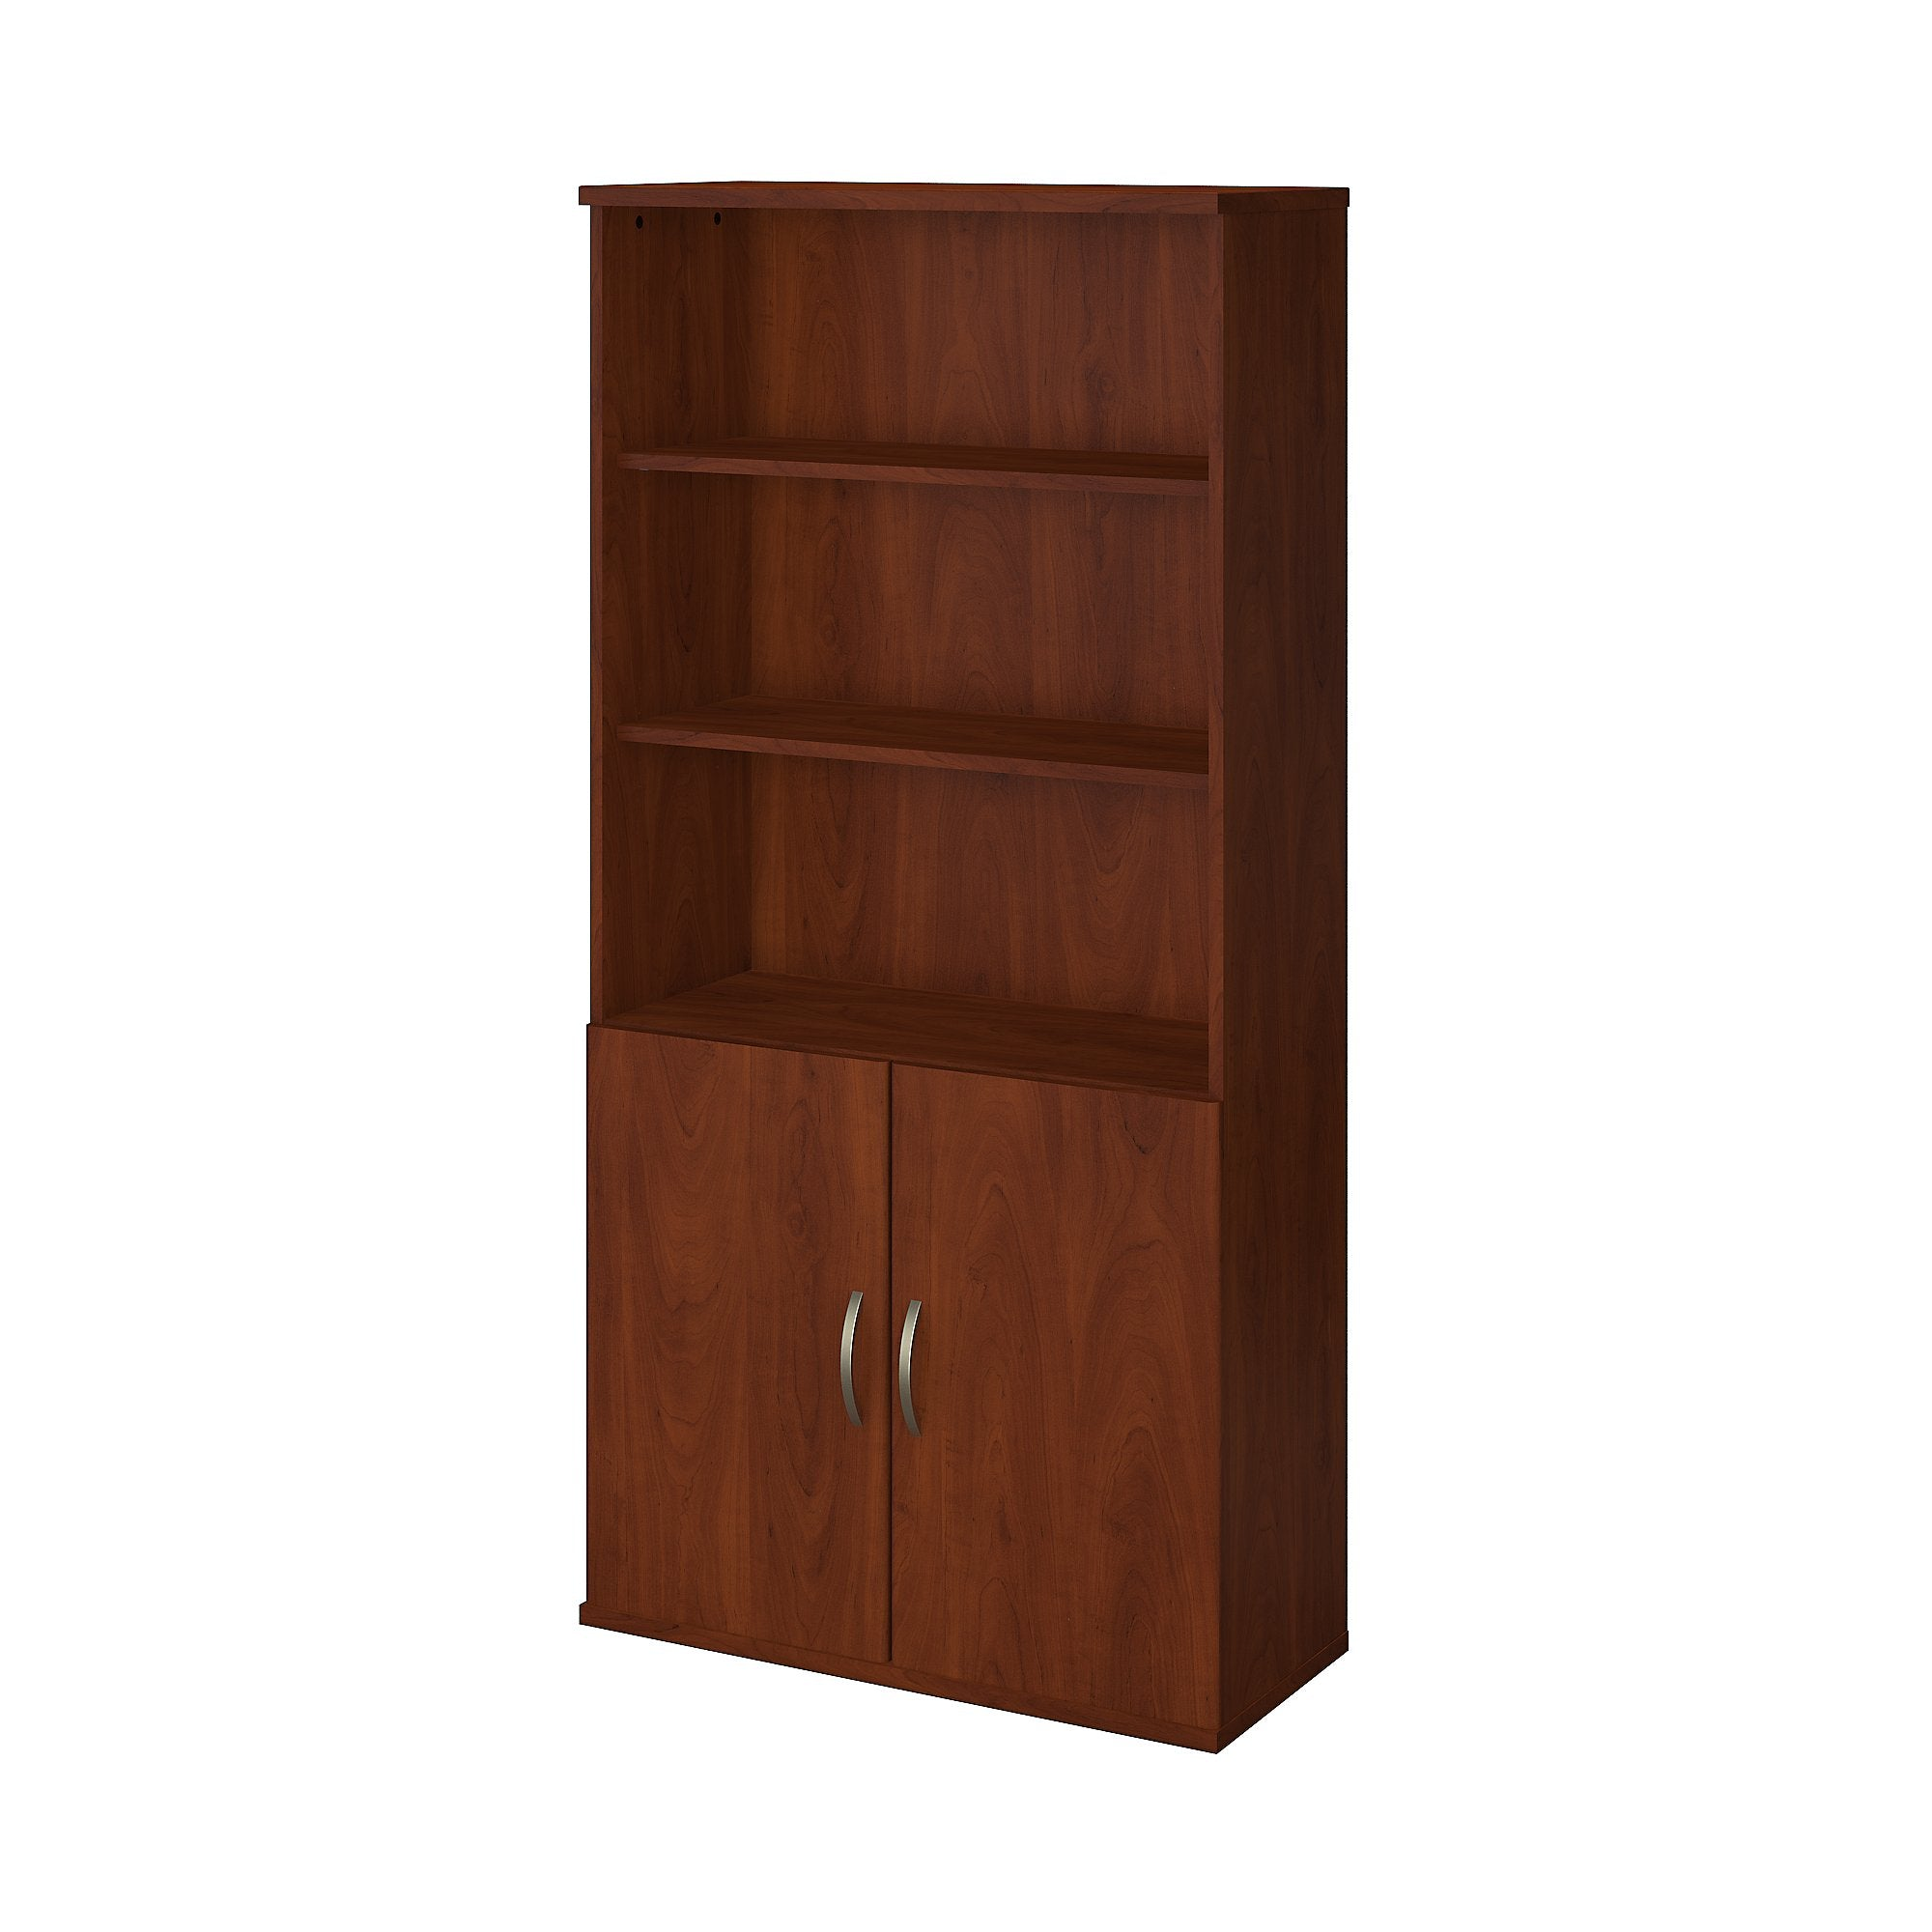 Bush Business Furniture Series C Elite 36W 5 Shelf Bookcase with Doors